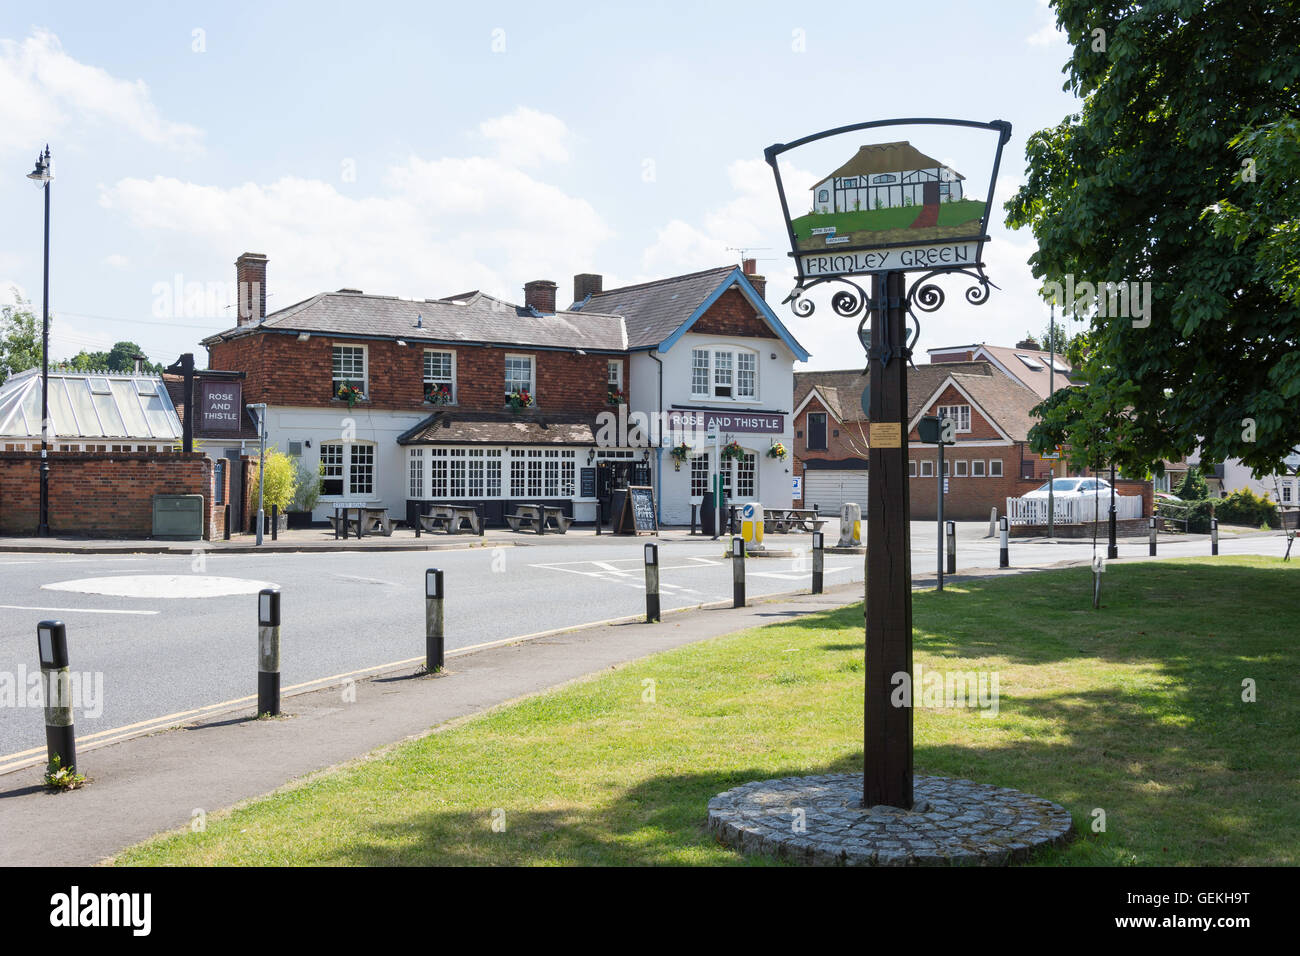 16th century The Rose and Thistle Pub from The Green, Frimley Green, Surrey, England, United Kingdom - Stock Image